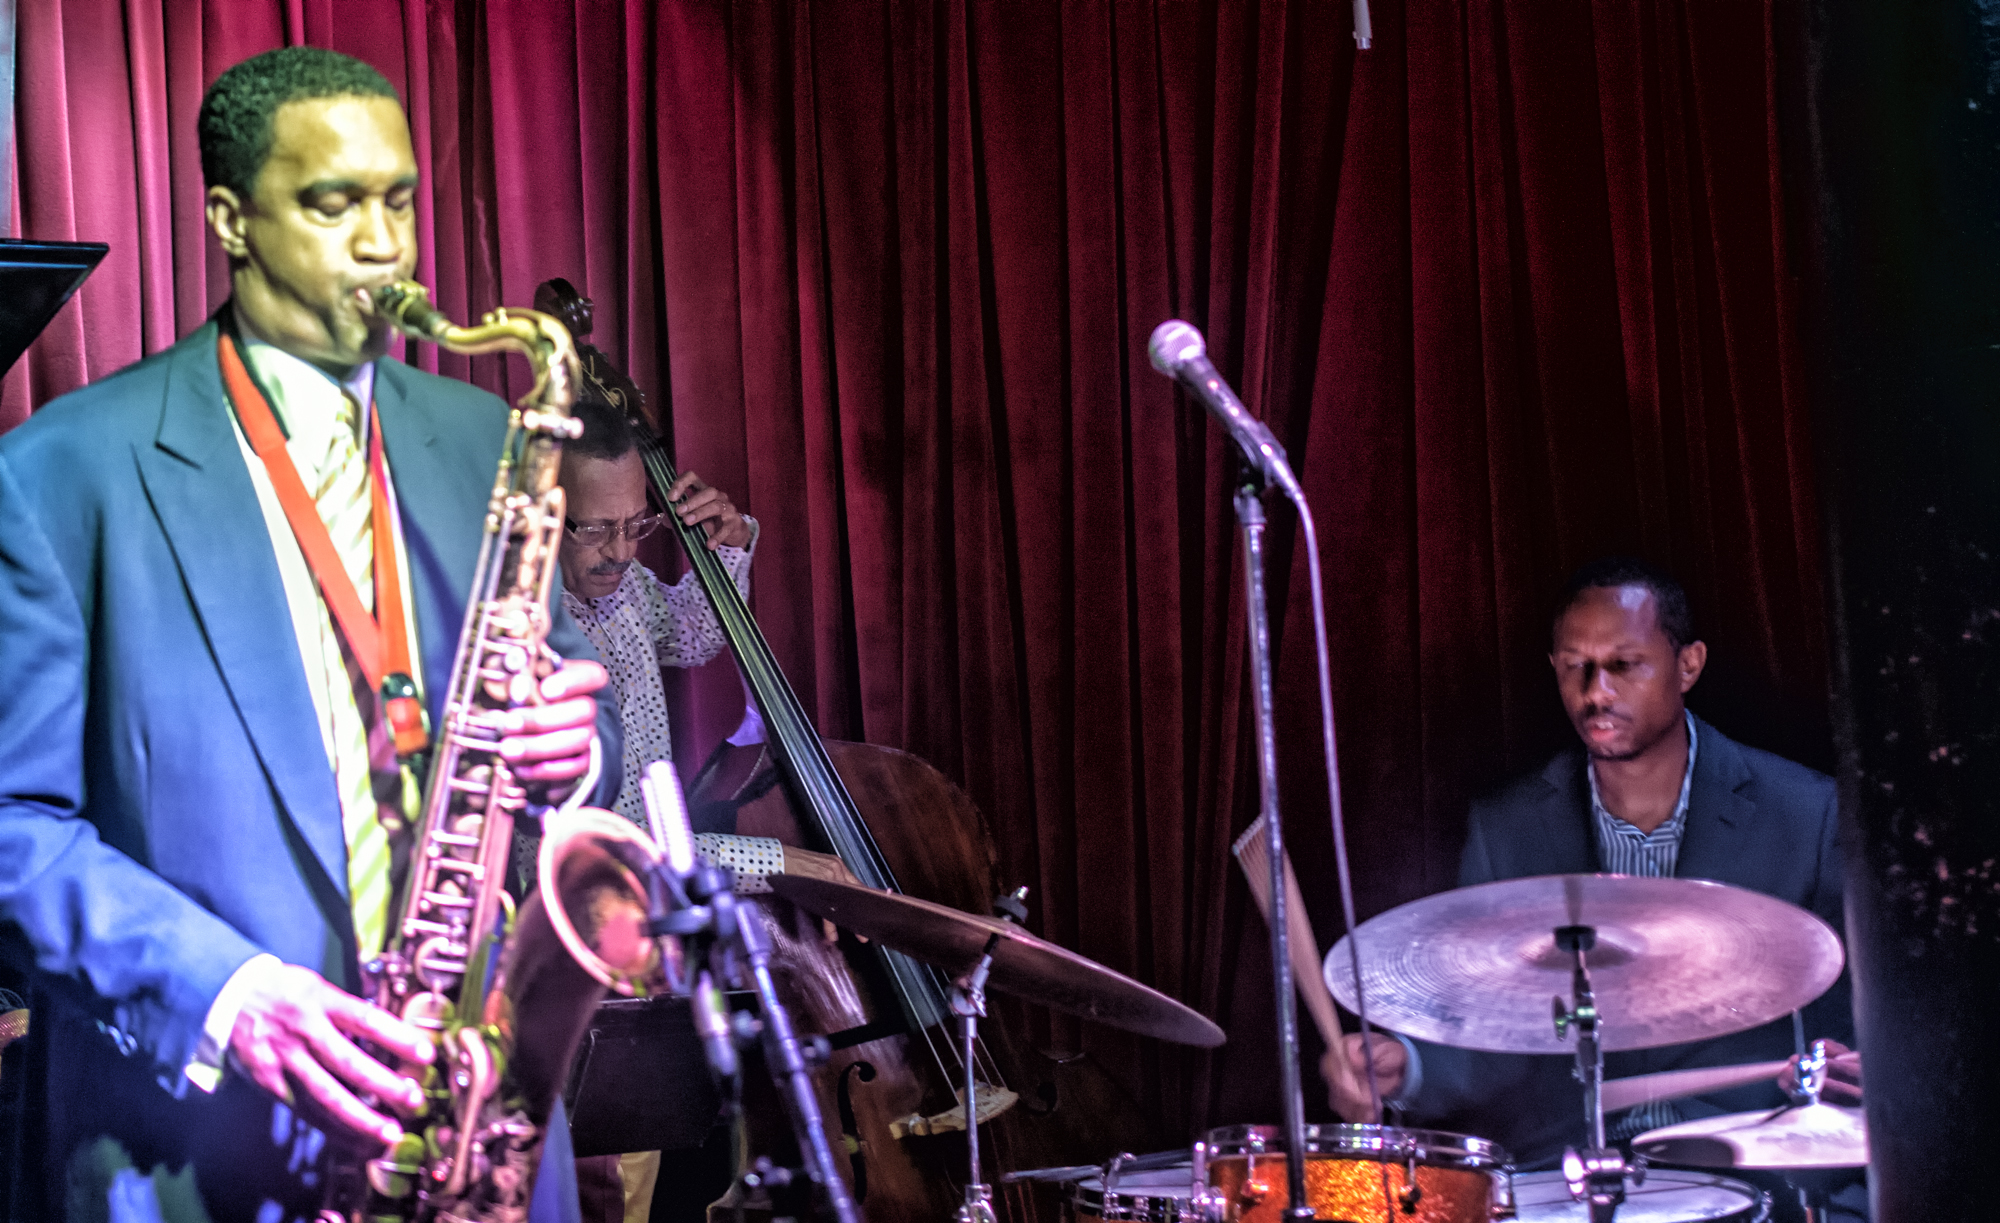 Javon Jackson, David Williams and Willie Jones Iii at Smoke Jazz Club in New York City